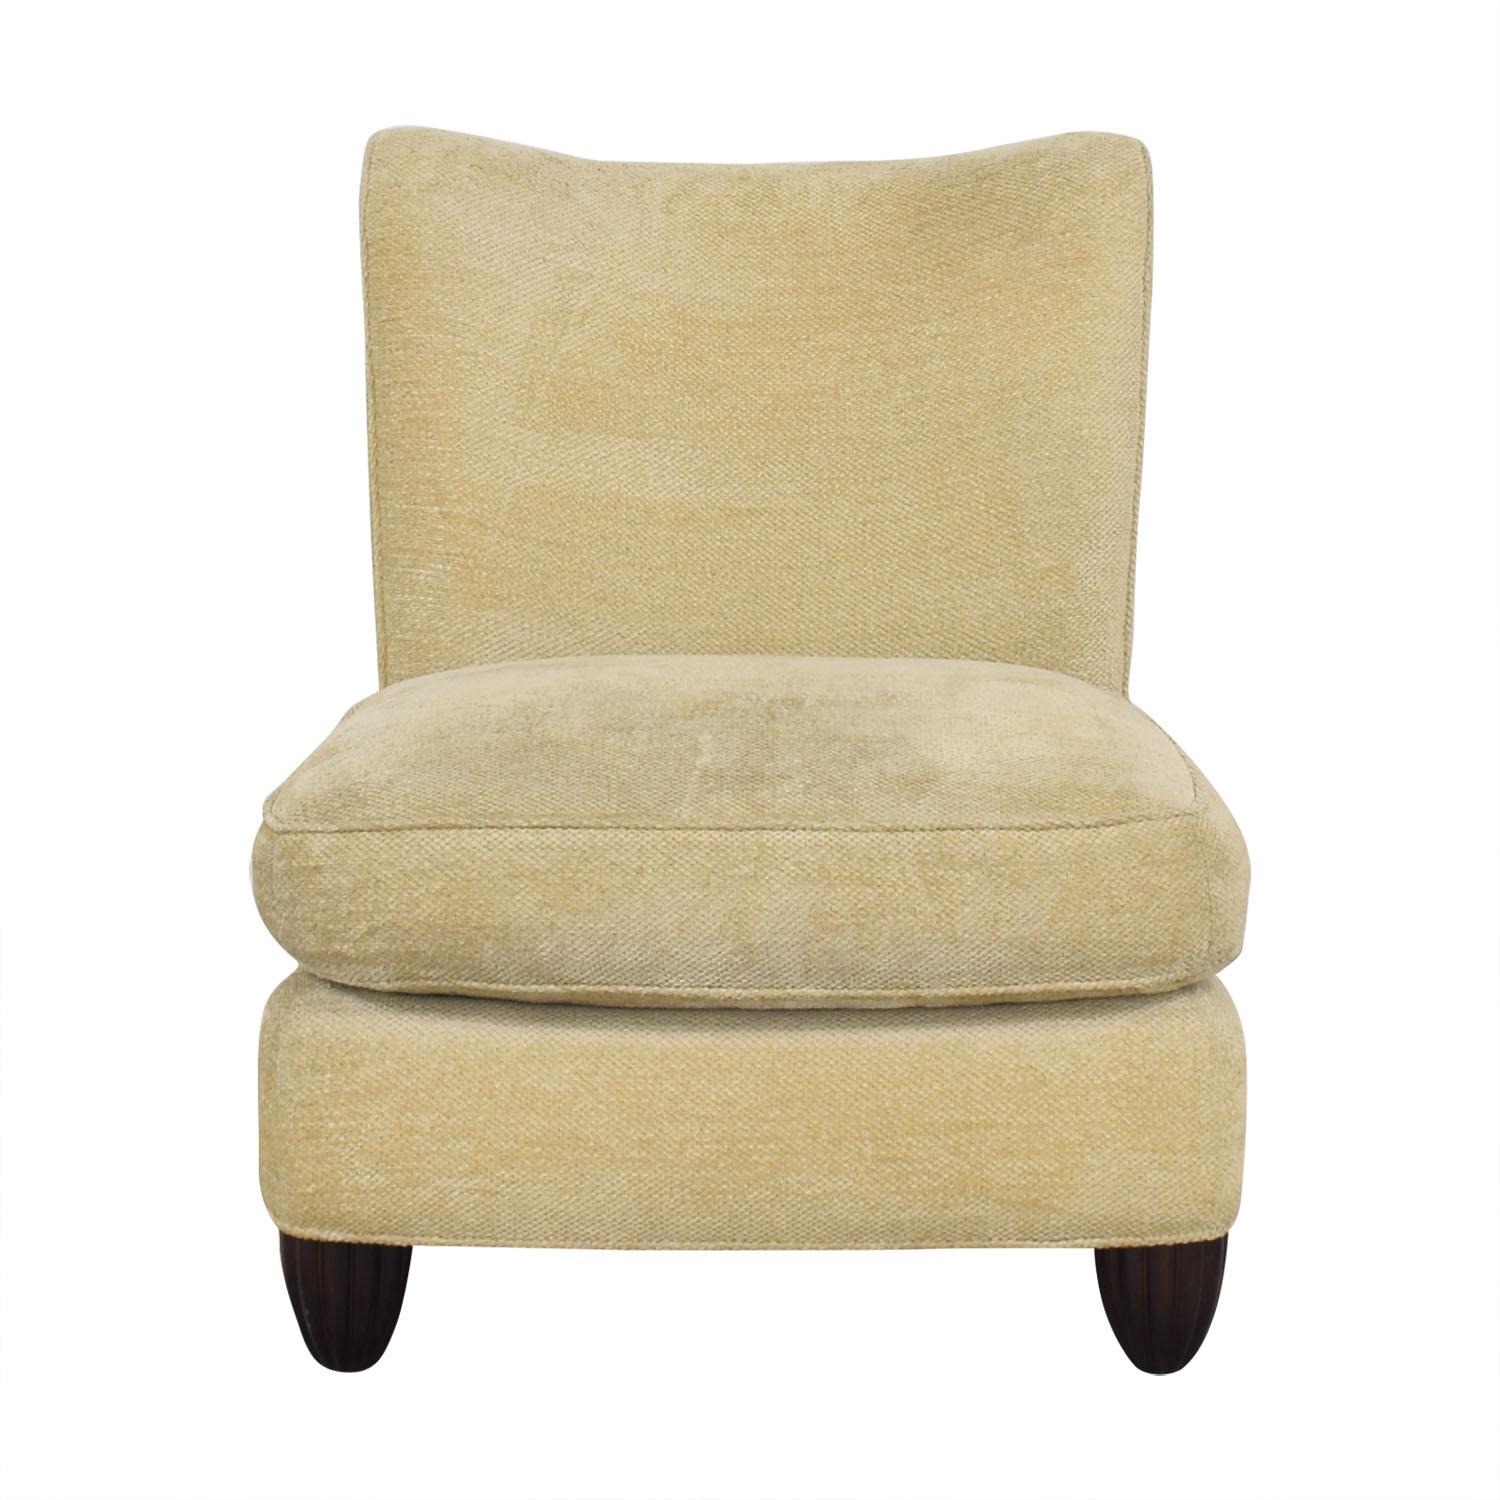 shop Baker Furniture Barbara Barry Slipper Chair Baker Furniture Accent Chairs